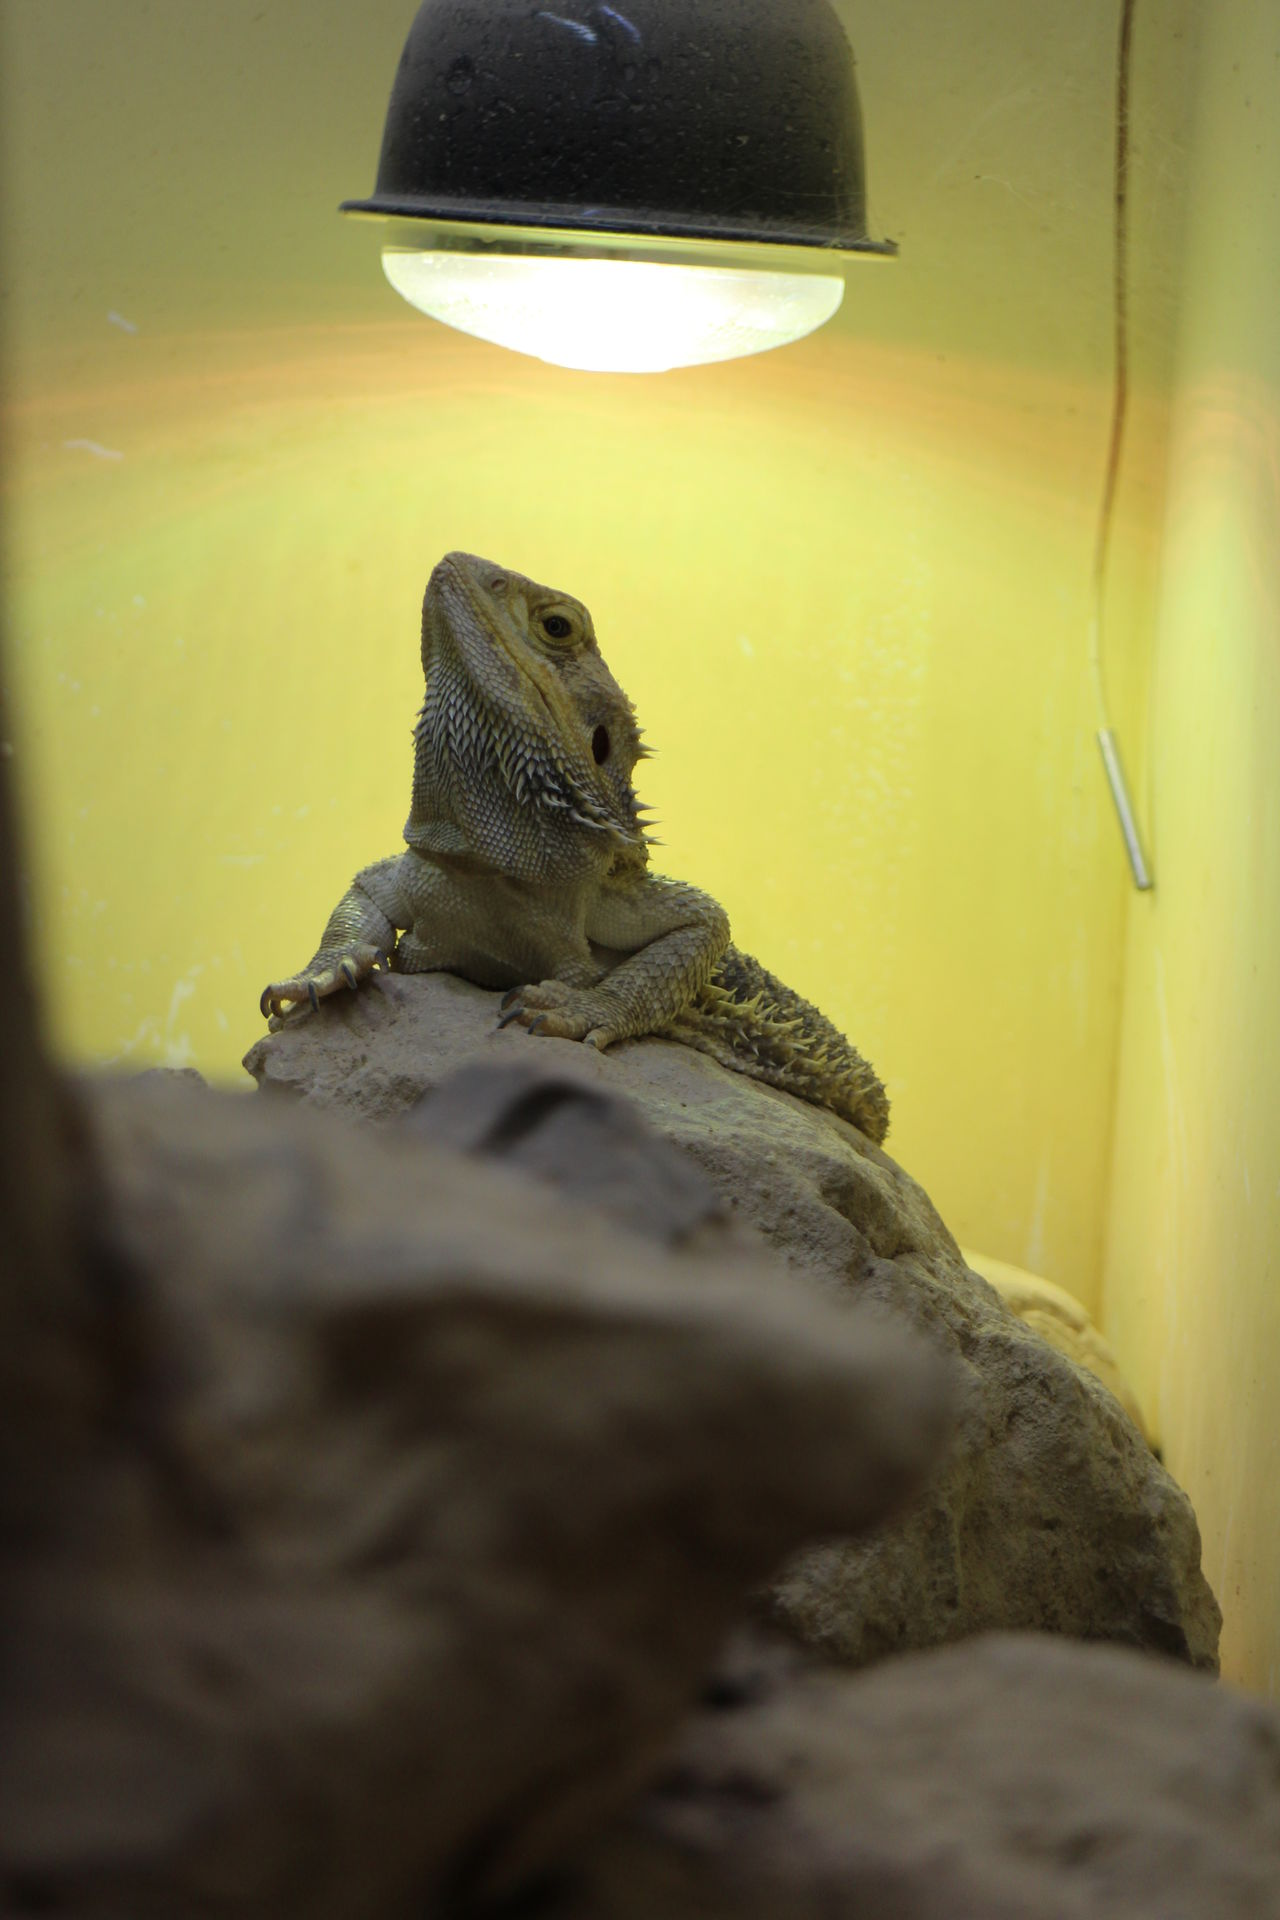 Reptile World Reptile Reptiles Facts Animals Planets Zoo Animals Photography Nature_collection Animals In Captivity Nature Photography Animal Wildlife Animal Photography Animals In The Wild Animal Animal Themes Wildlife & Nature Wildlife Park Reptilecollection Reptile Photography